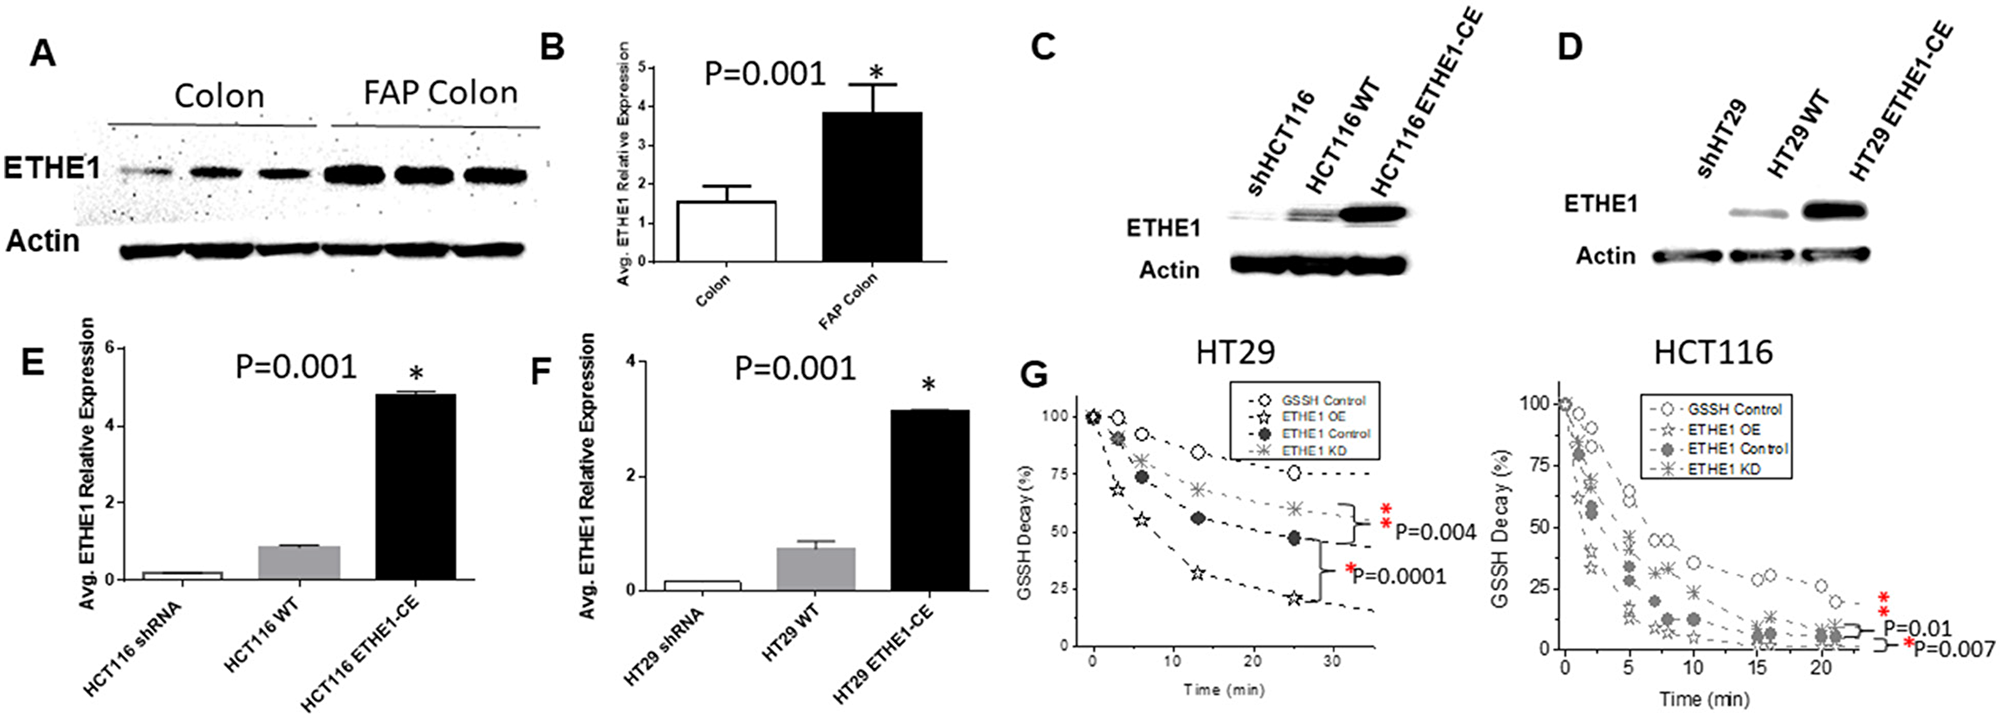 Increased ETHE1 expression and Activity in FAP and CRC.